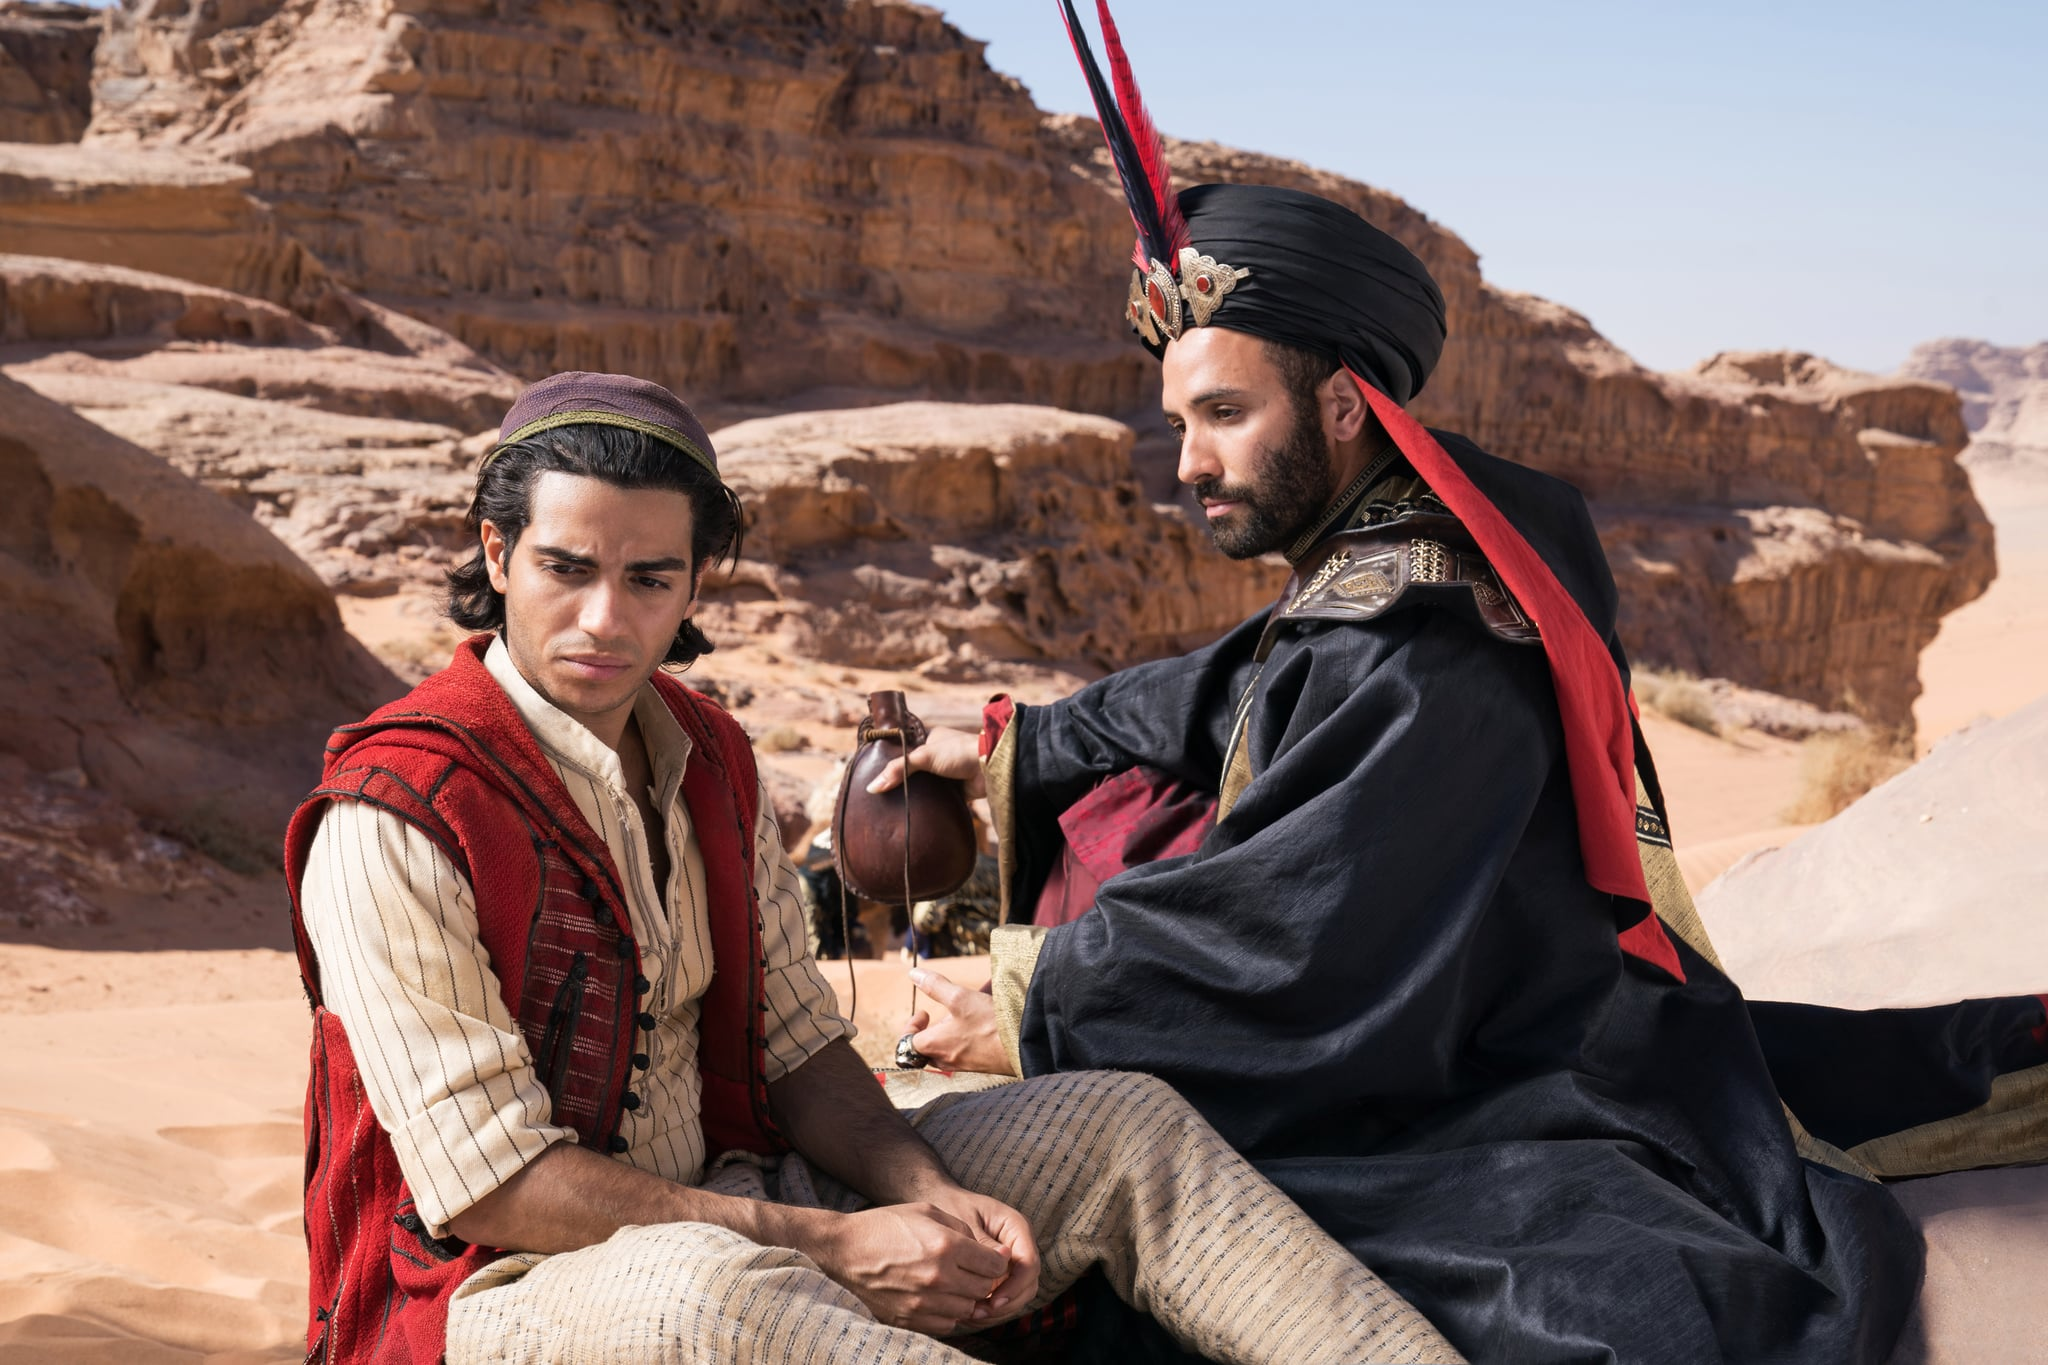 Mena Massoud is Aladdin and Marwan Kenzari is Jafar in Disney's live-action ALADDIN, directed by Guy Ritchie.